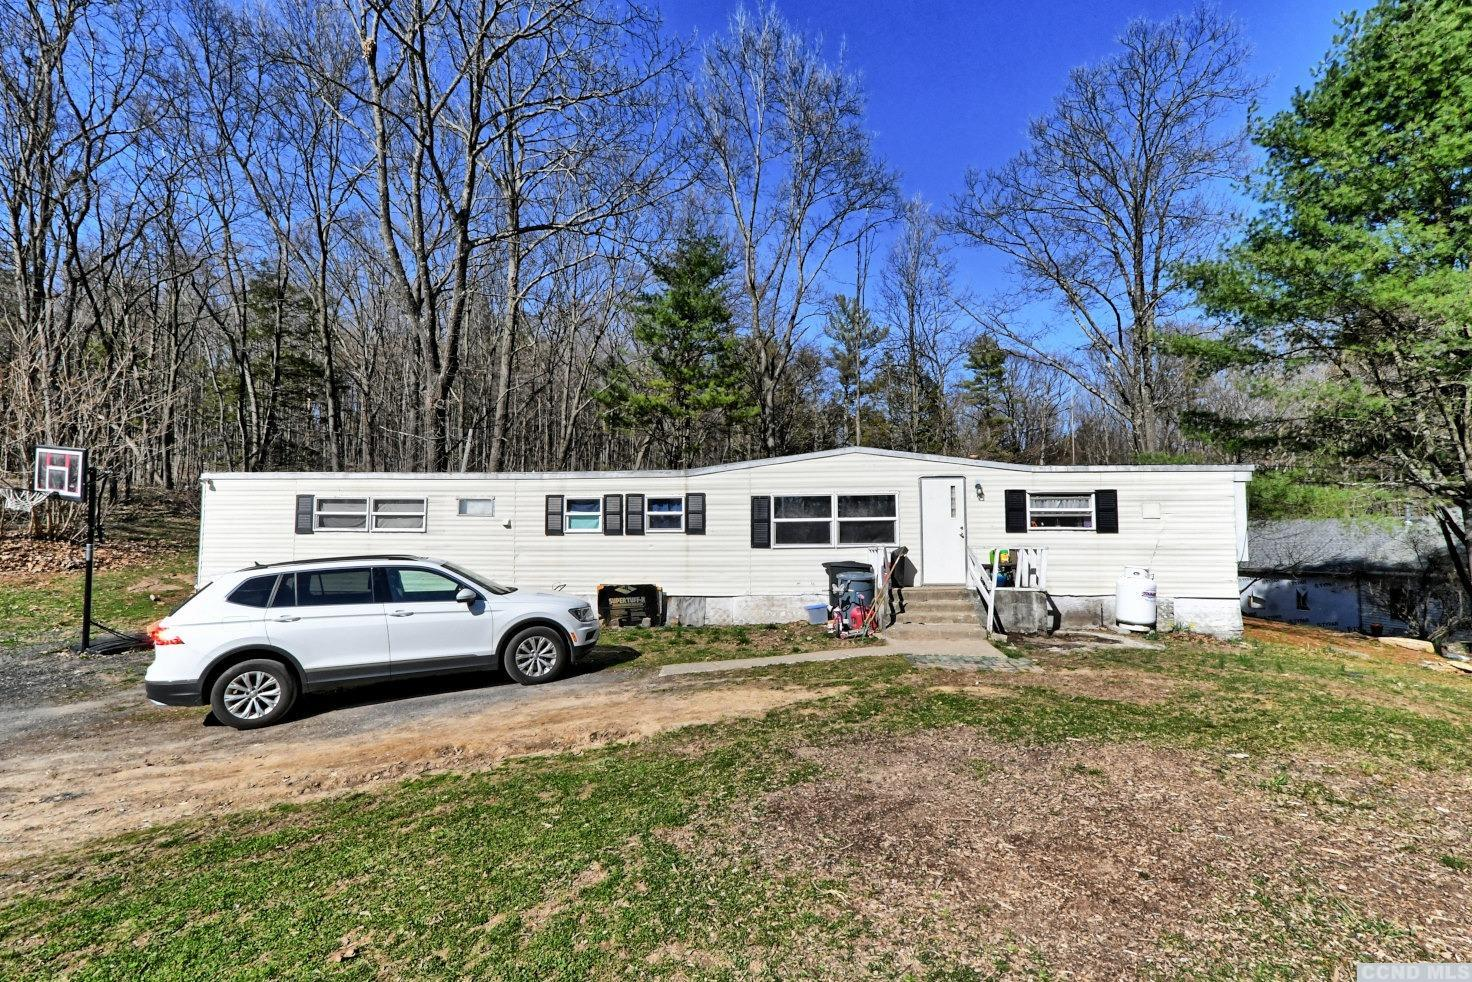 A 2 to 3 Bedroom, 2 Bath Single Wide Manufactured Home in Catskill on .45 acres. The home has a kitchen, a living room, a sunroom that is being used as a bedroom, a laundry room, & a master bedroom and bath. Minutes to the quaint Village of Leeds. 5 to 10 minutes to the Village of Catskill, and 30 minutes to Hunter Mountain. Please view our 3D virtual tour of this home.